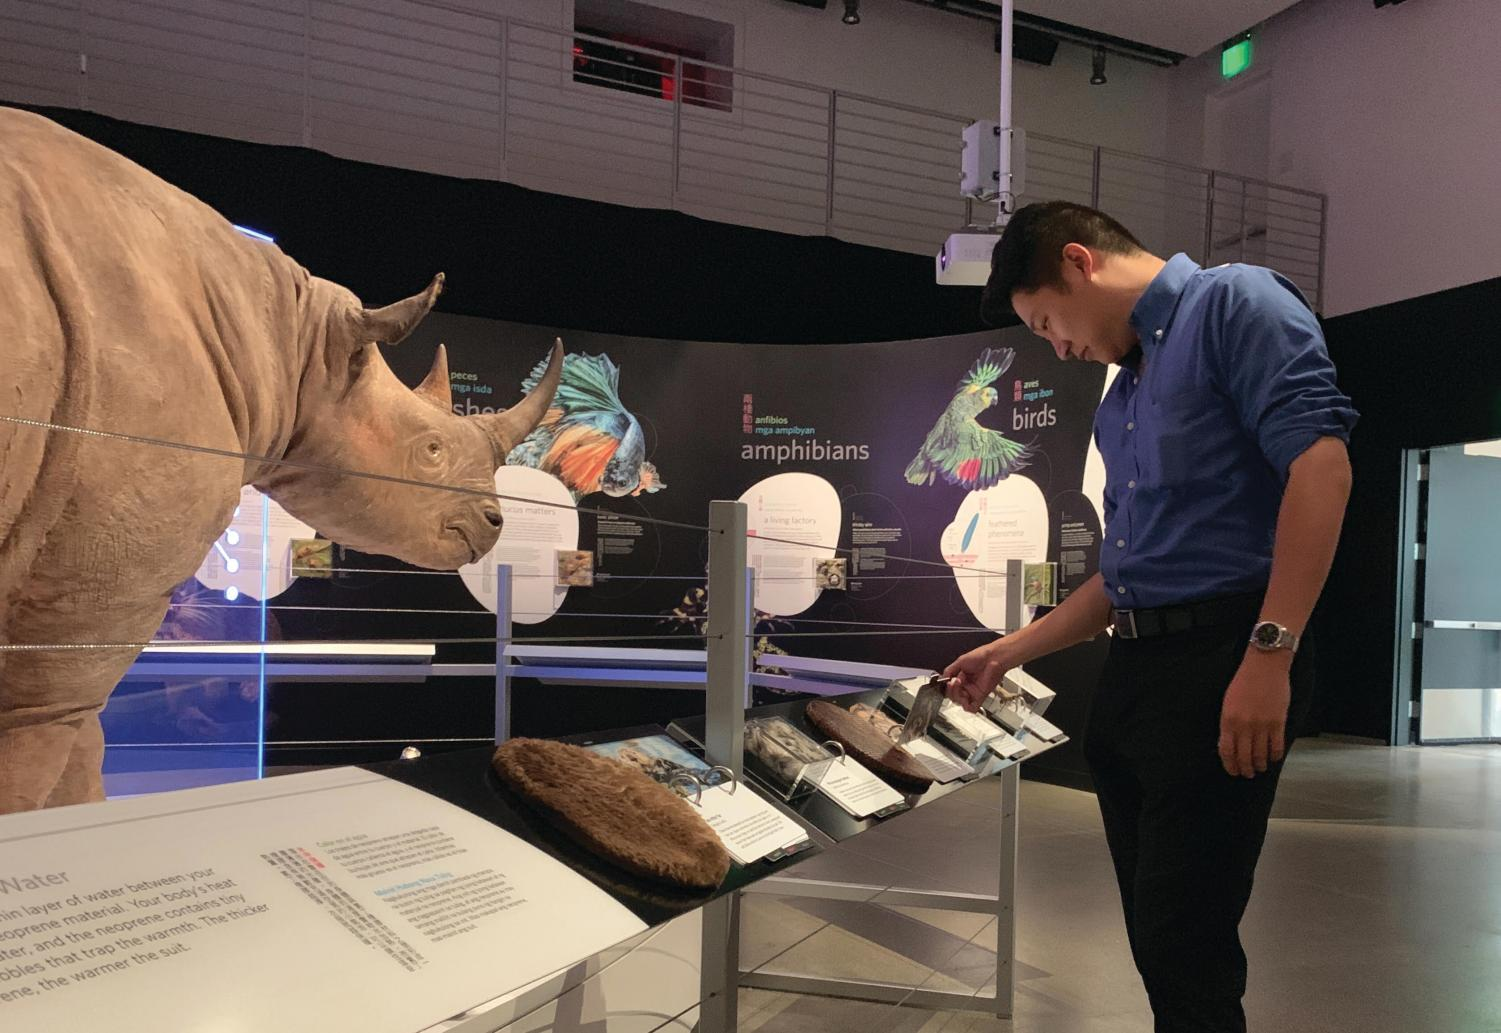 A visitor goes through one of the hands-on activities by feeling real pieces of animal skin. The exhibit provides information on the similarities between animals and their skin specifically the living organisms on the human face.